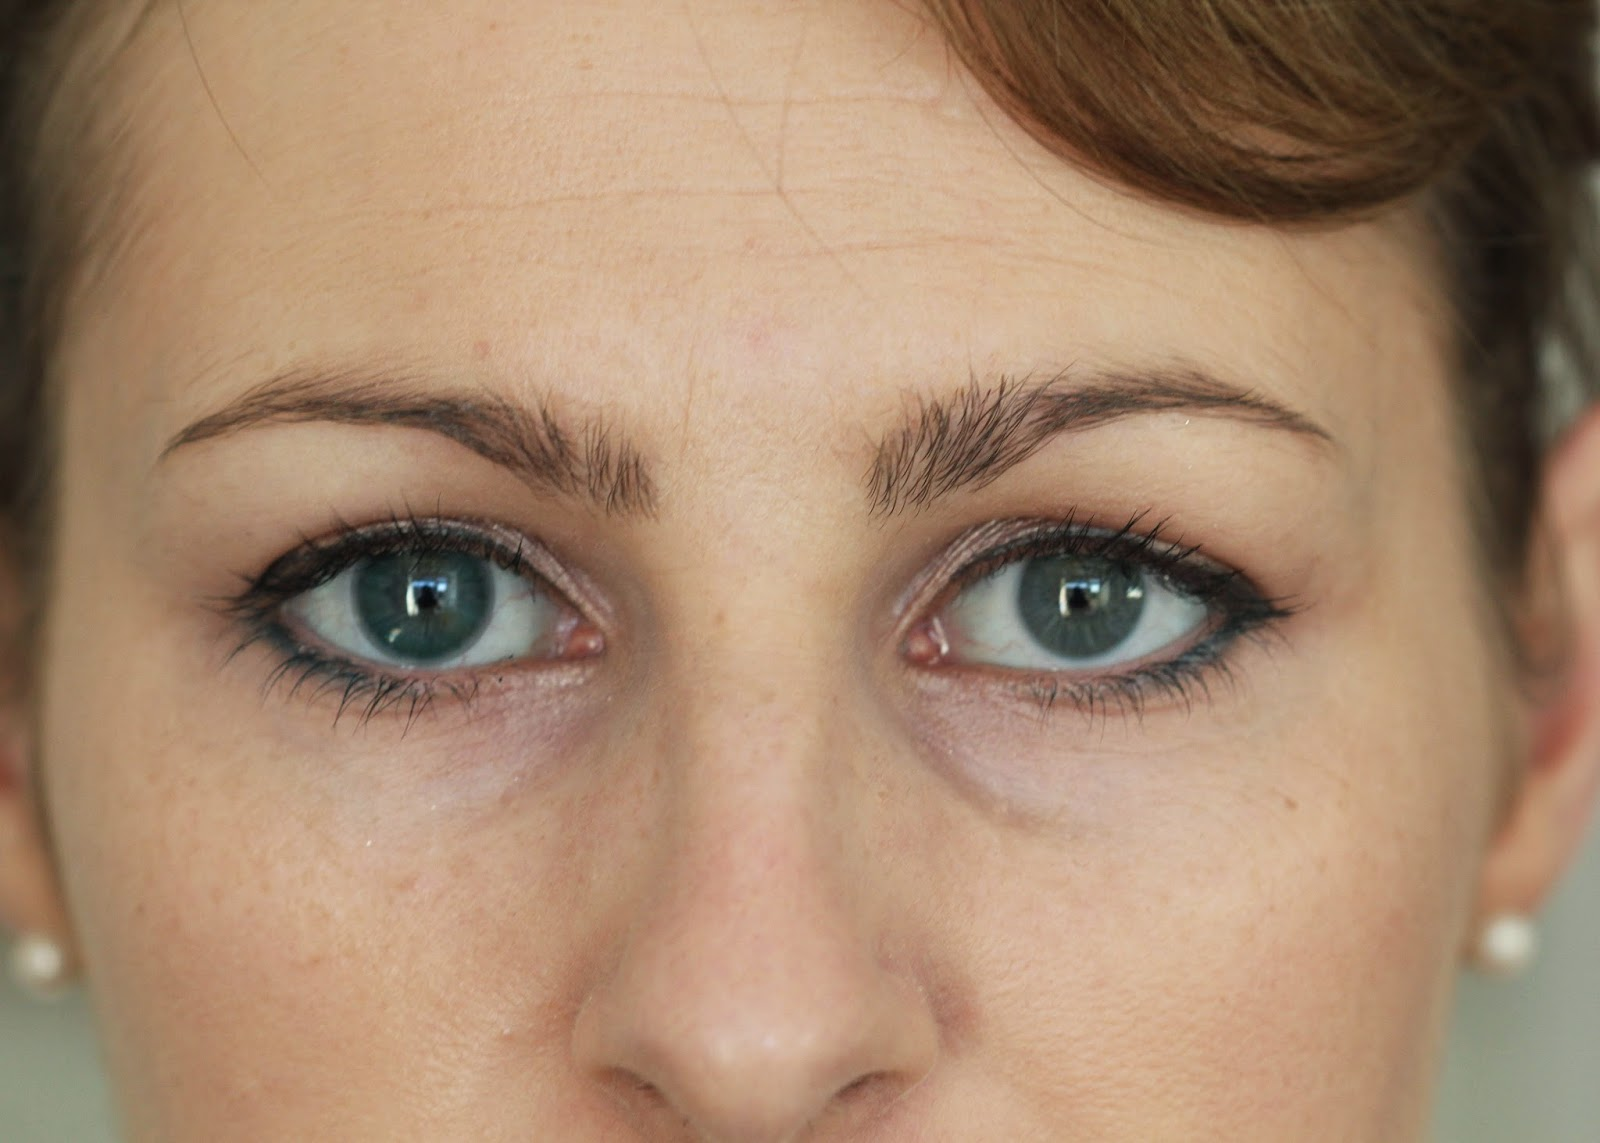 How To Make Your Eyes Grey Naturally